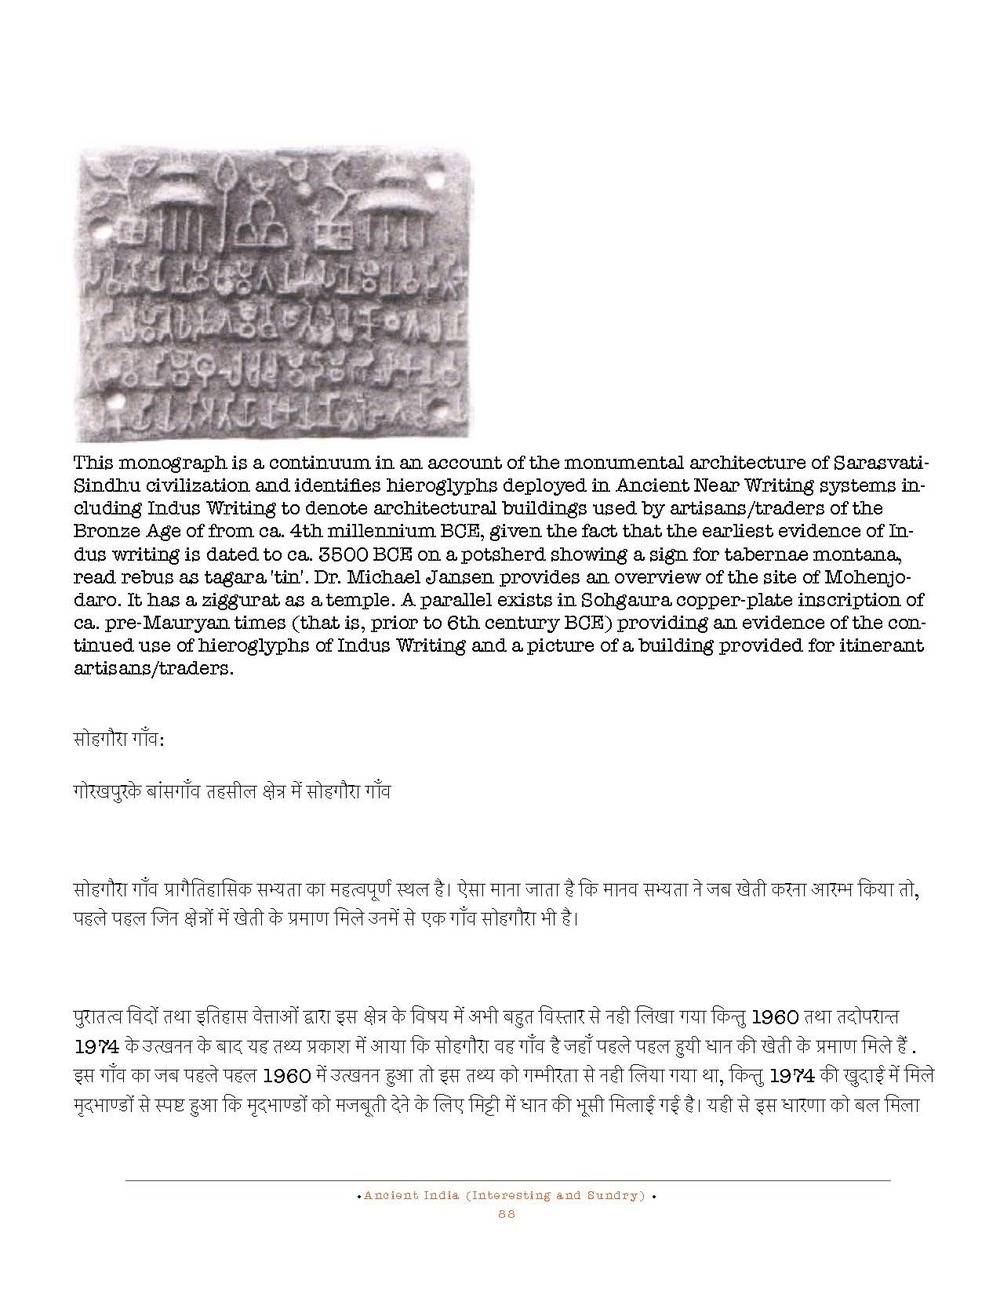 HOCE- Ancient India Notes (Other Interesting and Sundry)_Page_088.jpg